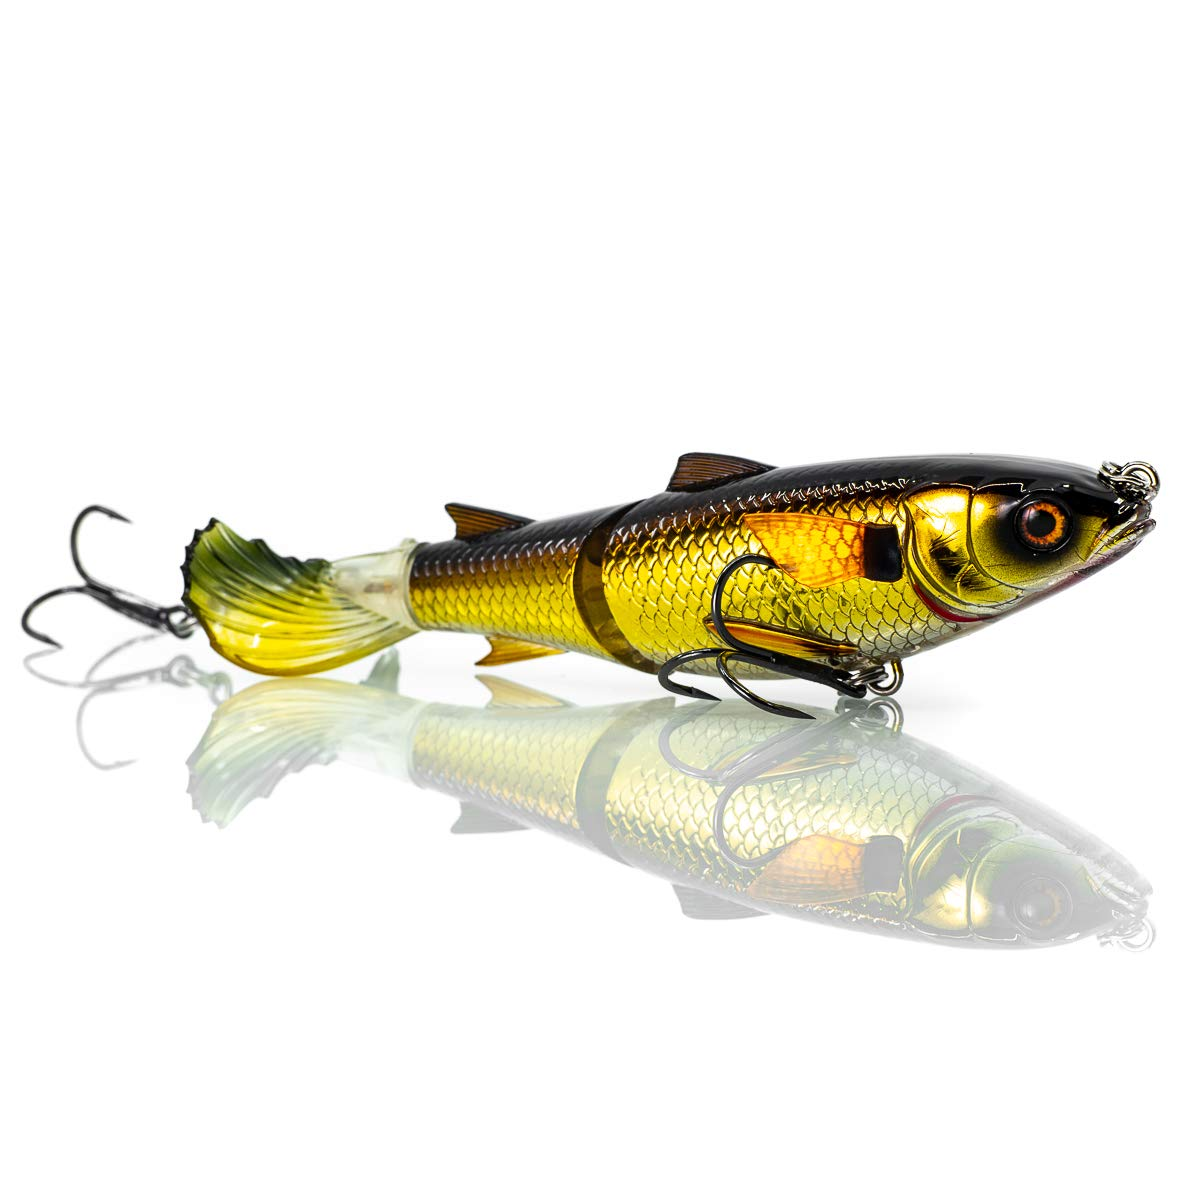 Chase Baits Soft Lure Drunken Mullet 95 mm Gold Shiner (5250)